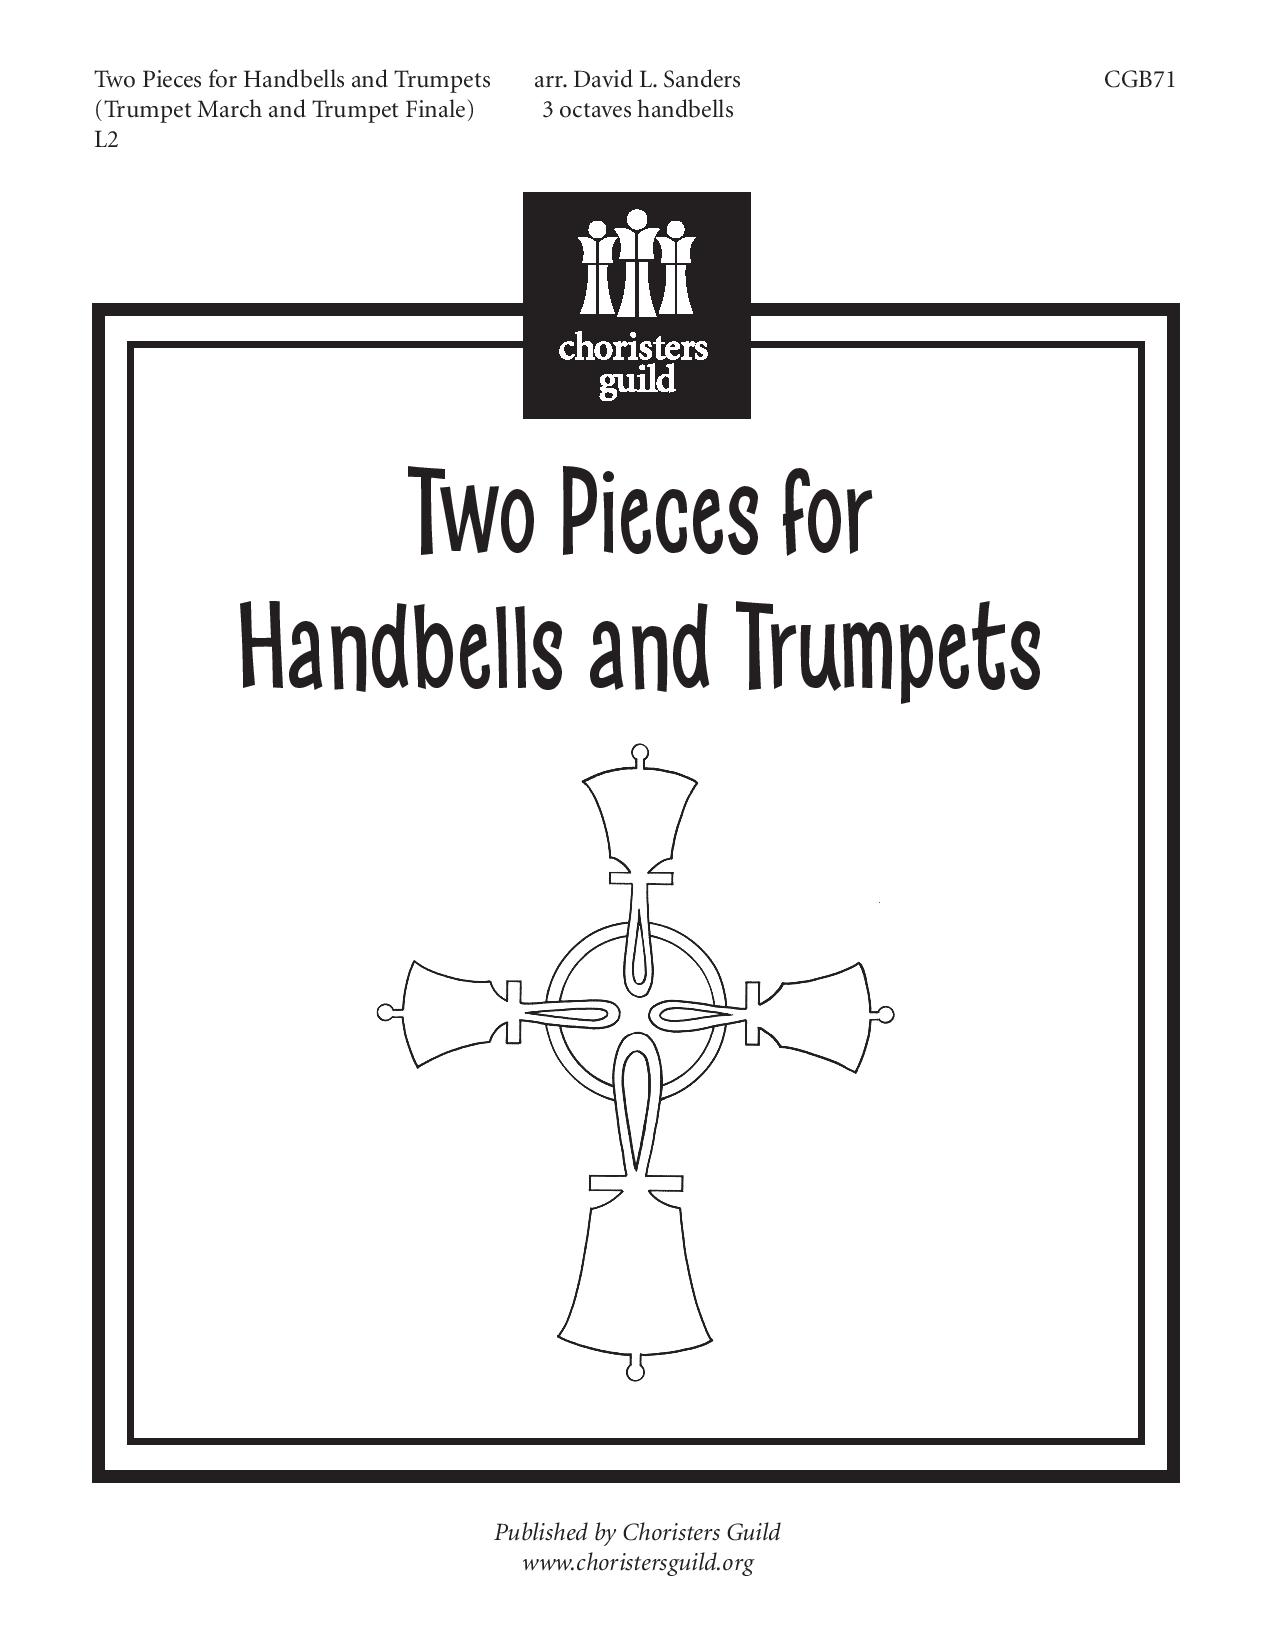 Two Pieces for Handbells and Trumpets